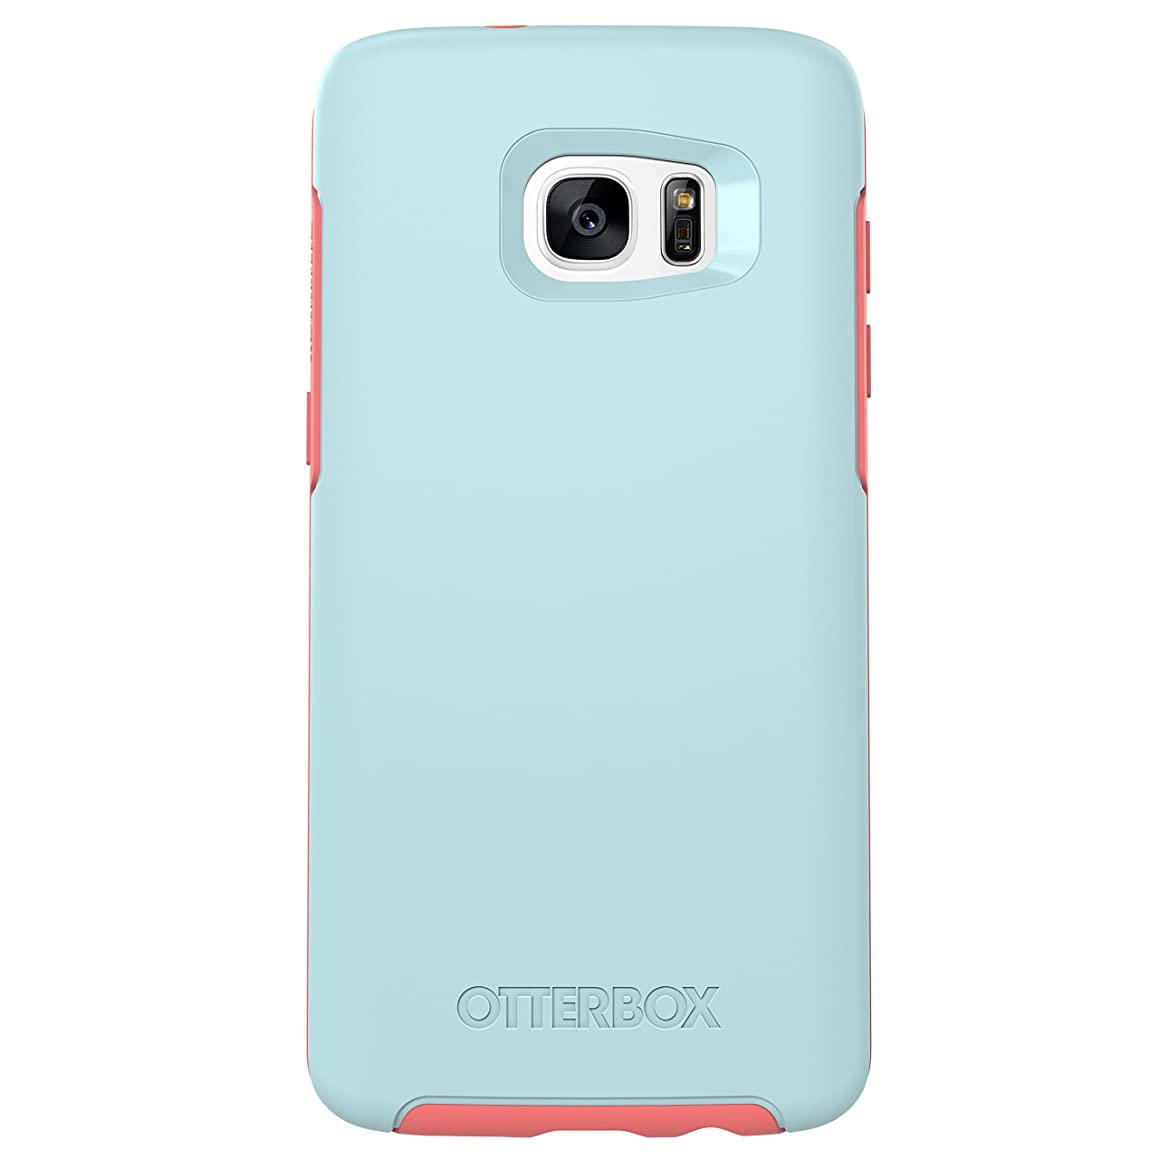 OtterBox SYMMETRY SERIES Case for Samsung Galaxy S7 Edge - Retail Packaging - BOARDWALK (BAHAMA BLUE/CANDY PINK)